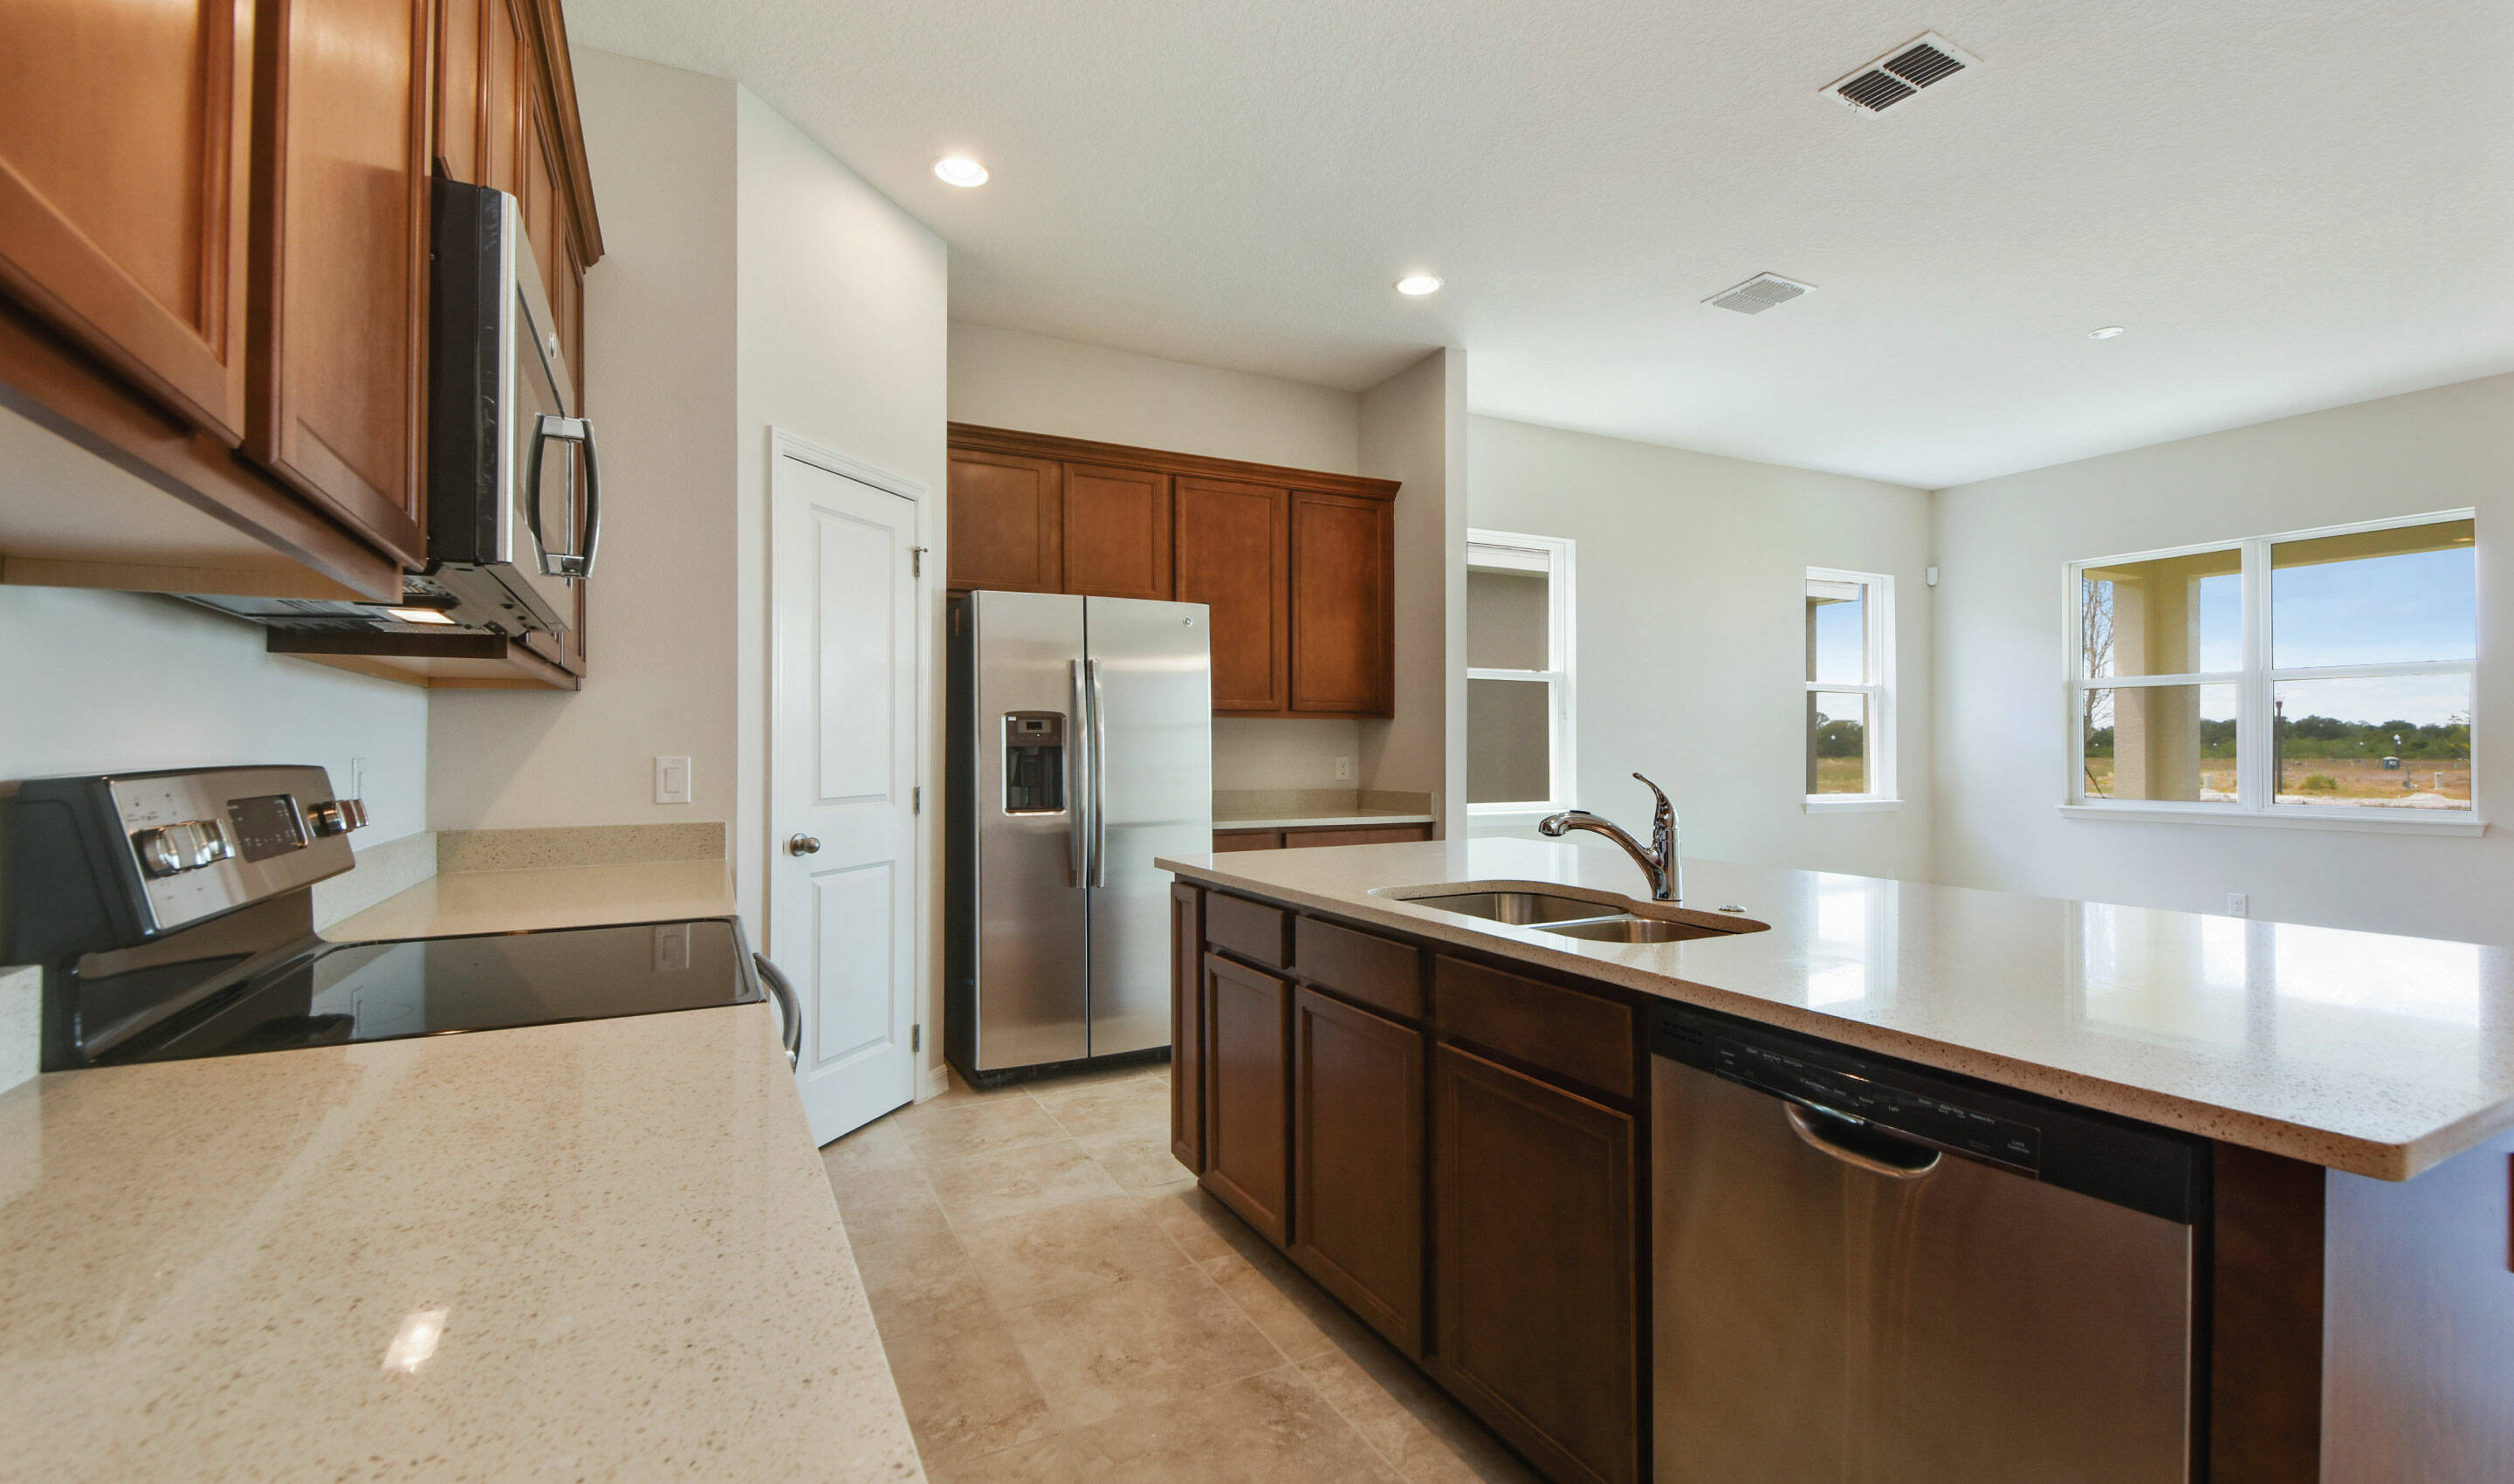 sherrington-kitchen-new-homes-orlando-florida